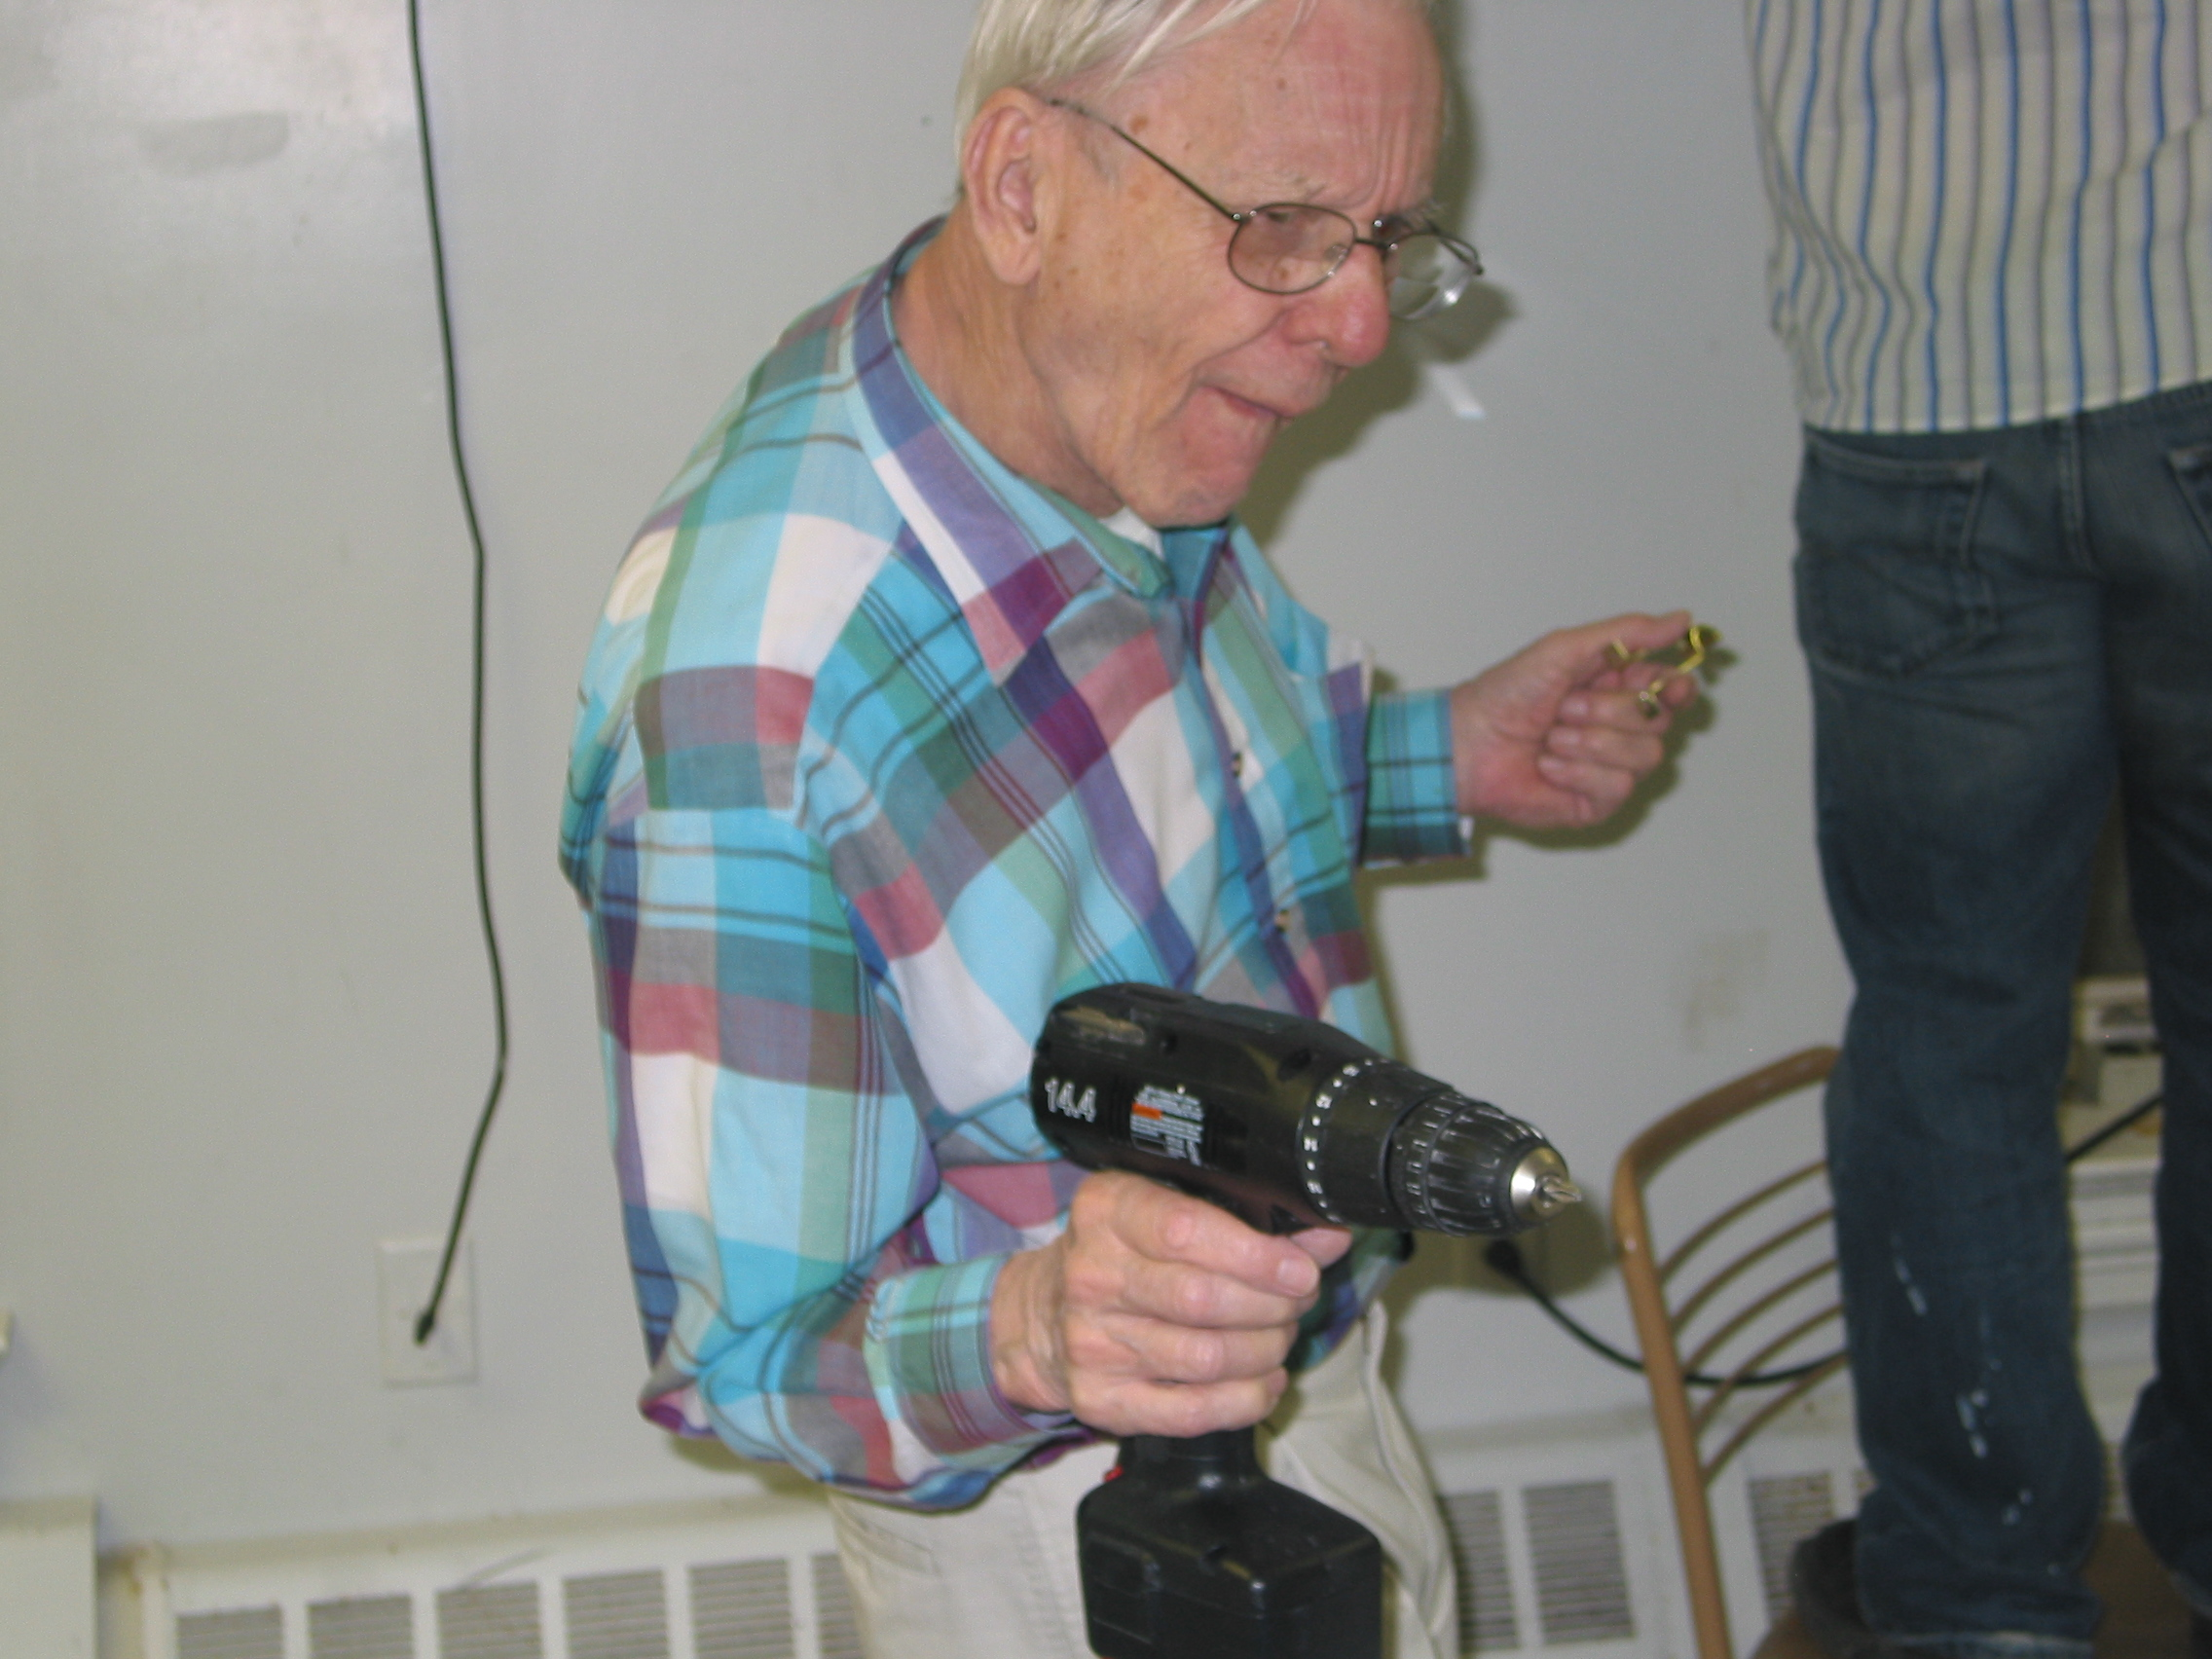 At the age of 81, helping set up Founders Day Brunch at Sigma's chapter house, 2005